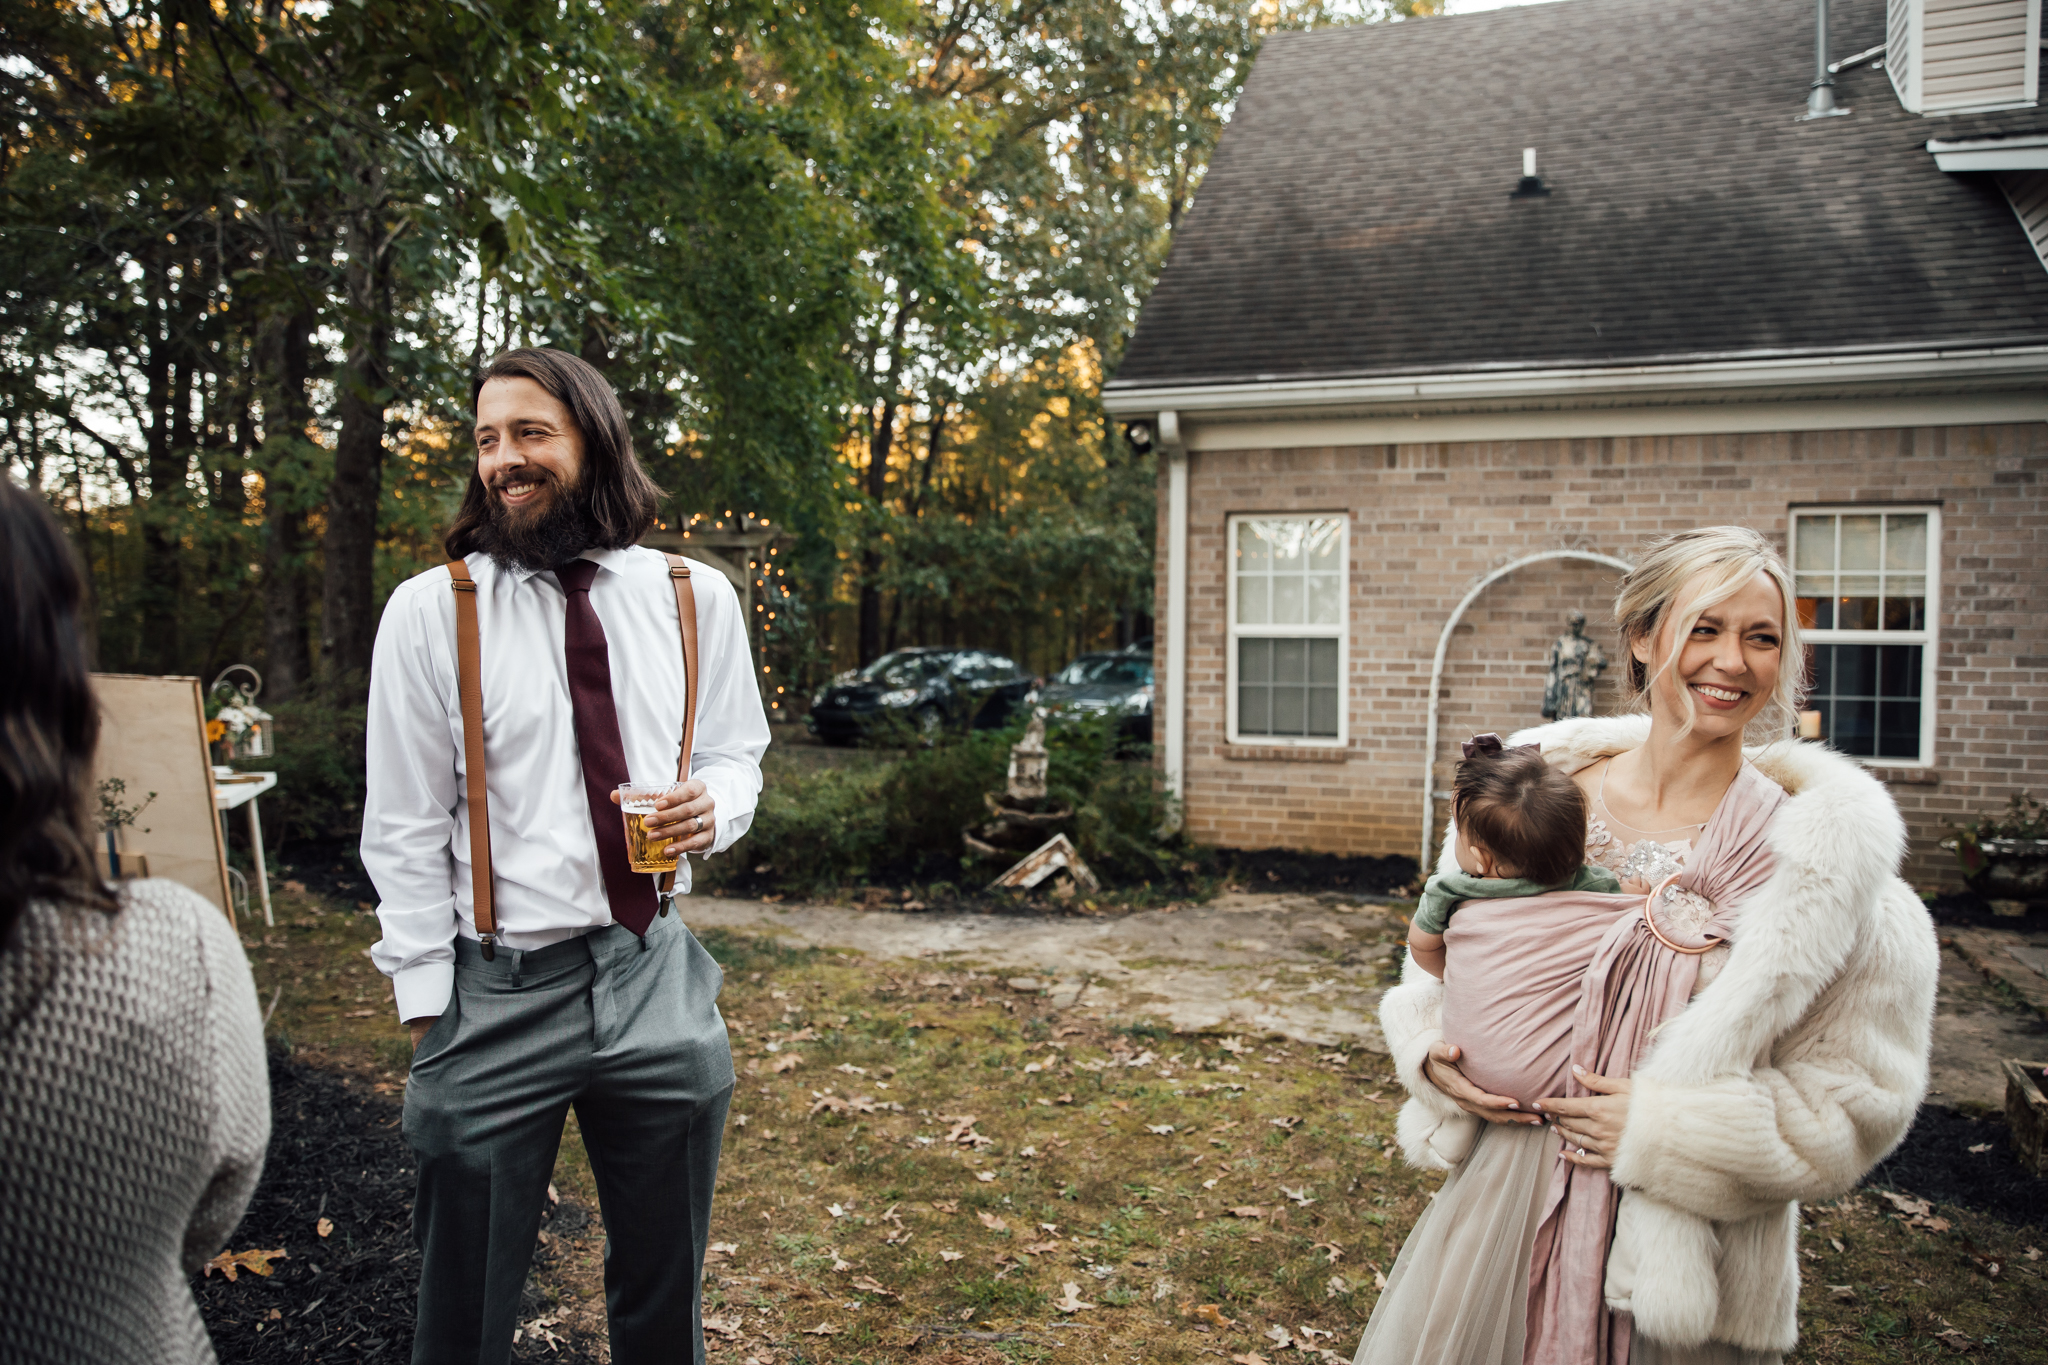 fall-backyard-wedding-memphis-wedding-photographers-thewarmtharoundyou (154 of 181).jpg